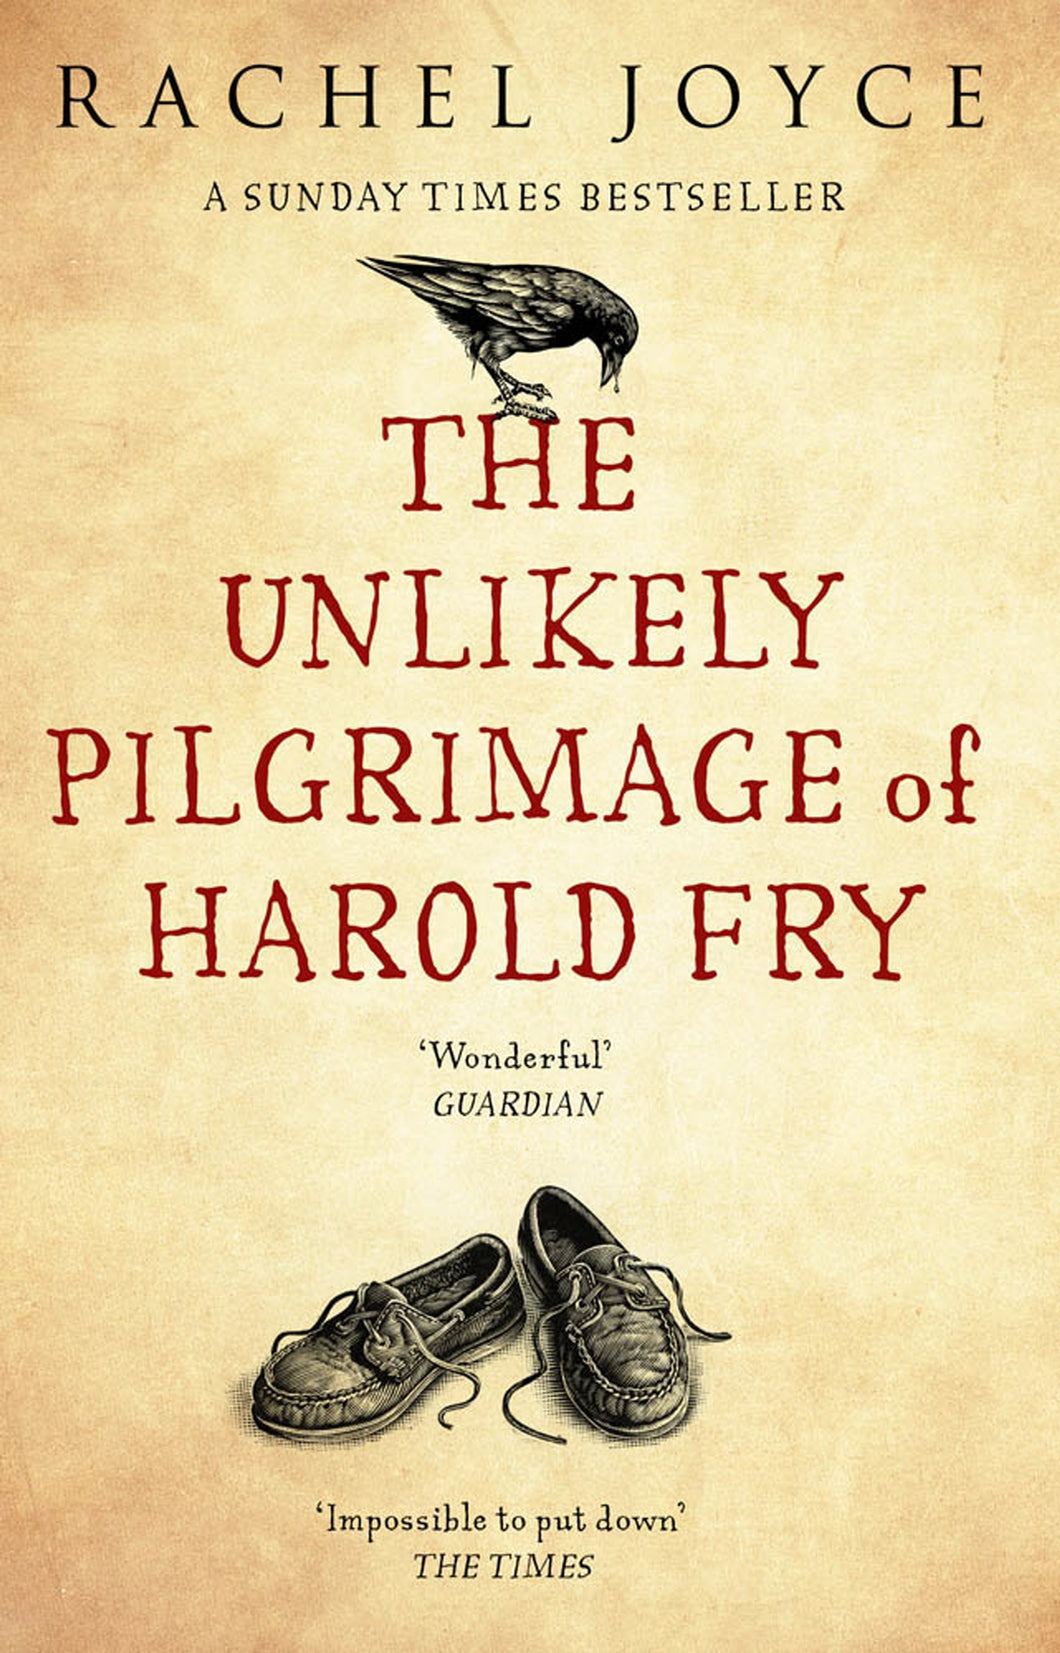 '-The uplifting and redemptive No. 1 Sunday Times bestseller Unlikely Pilgrimage Of Harold Fry